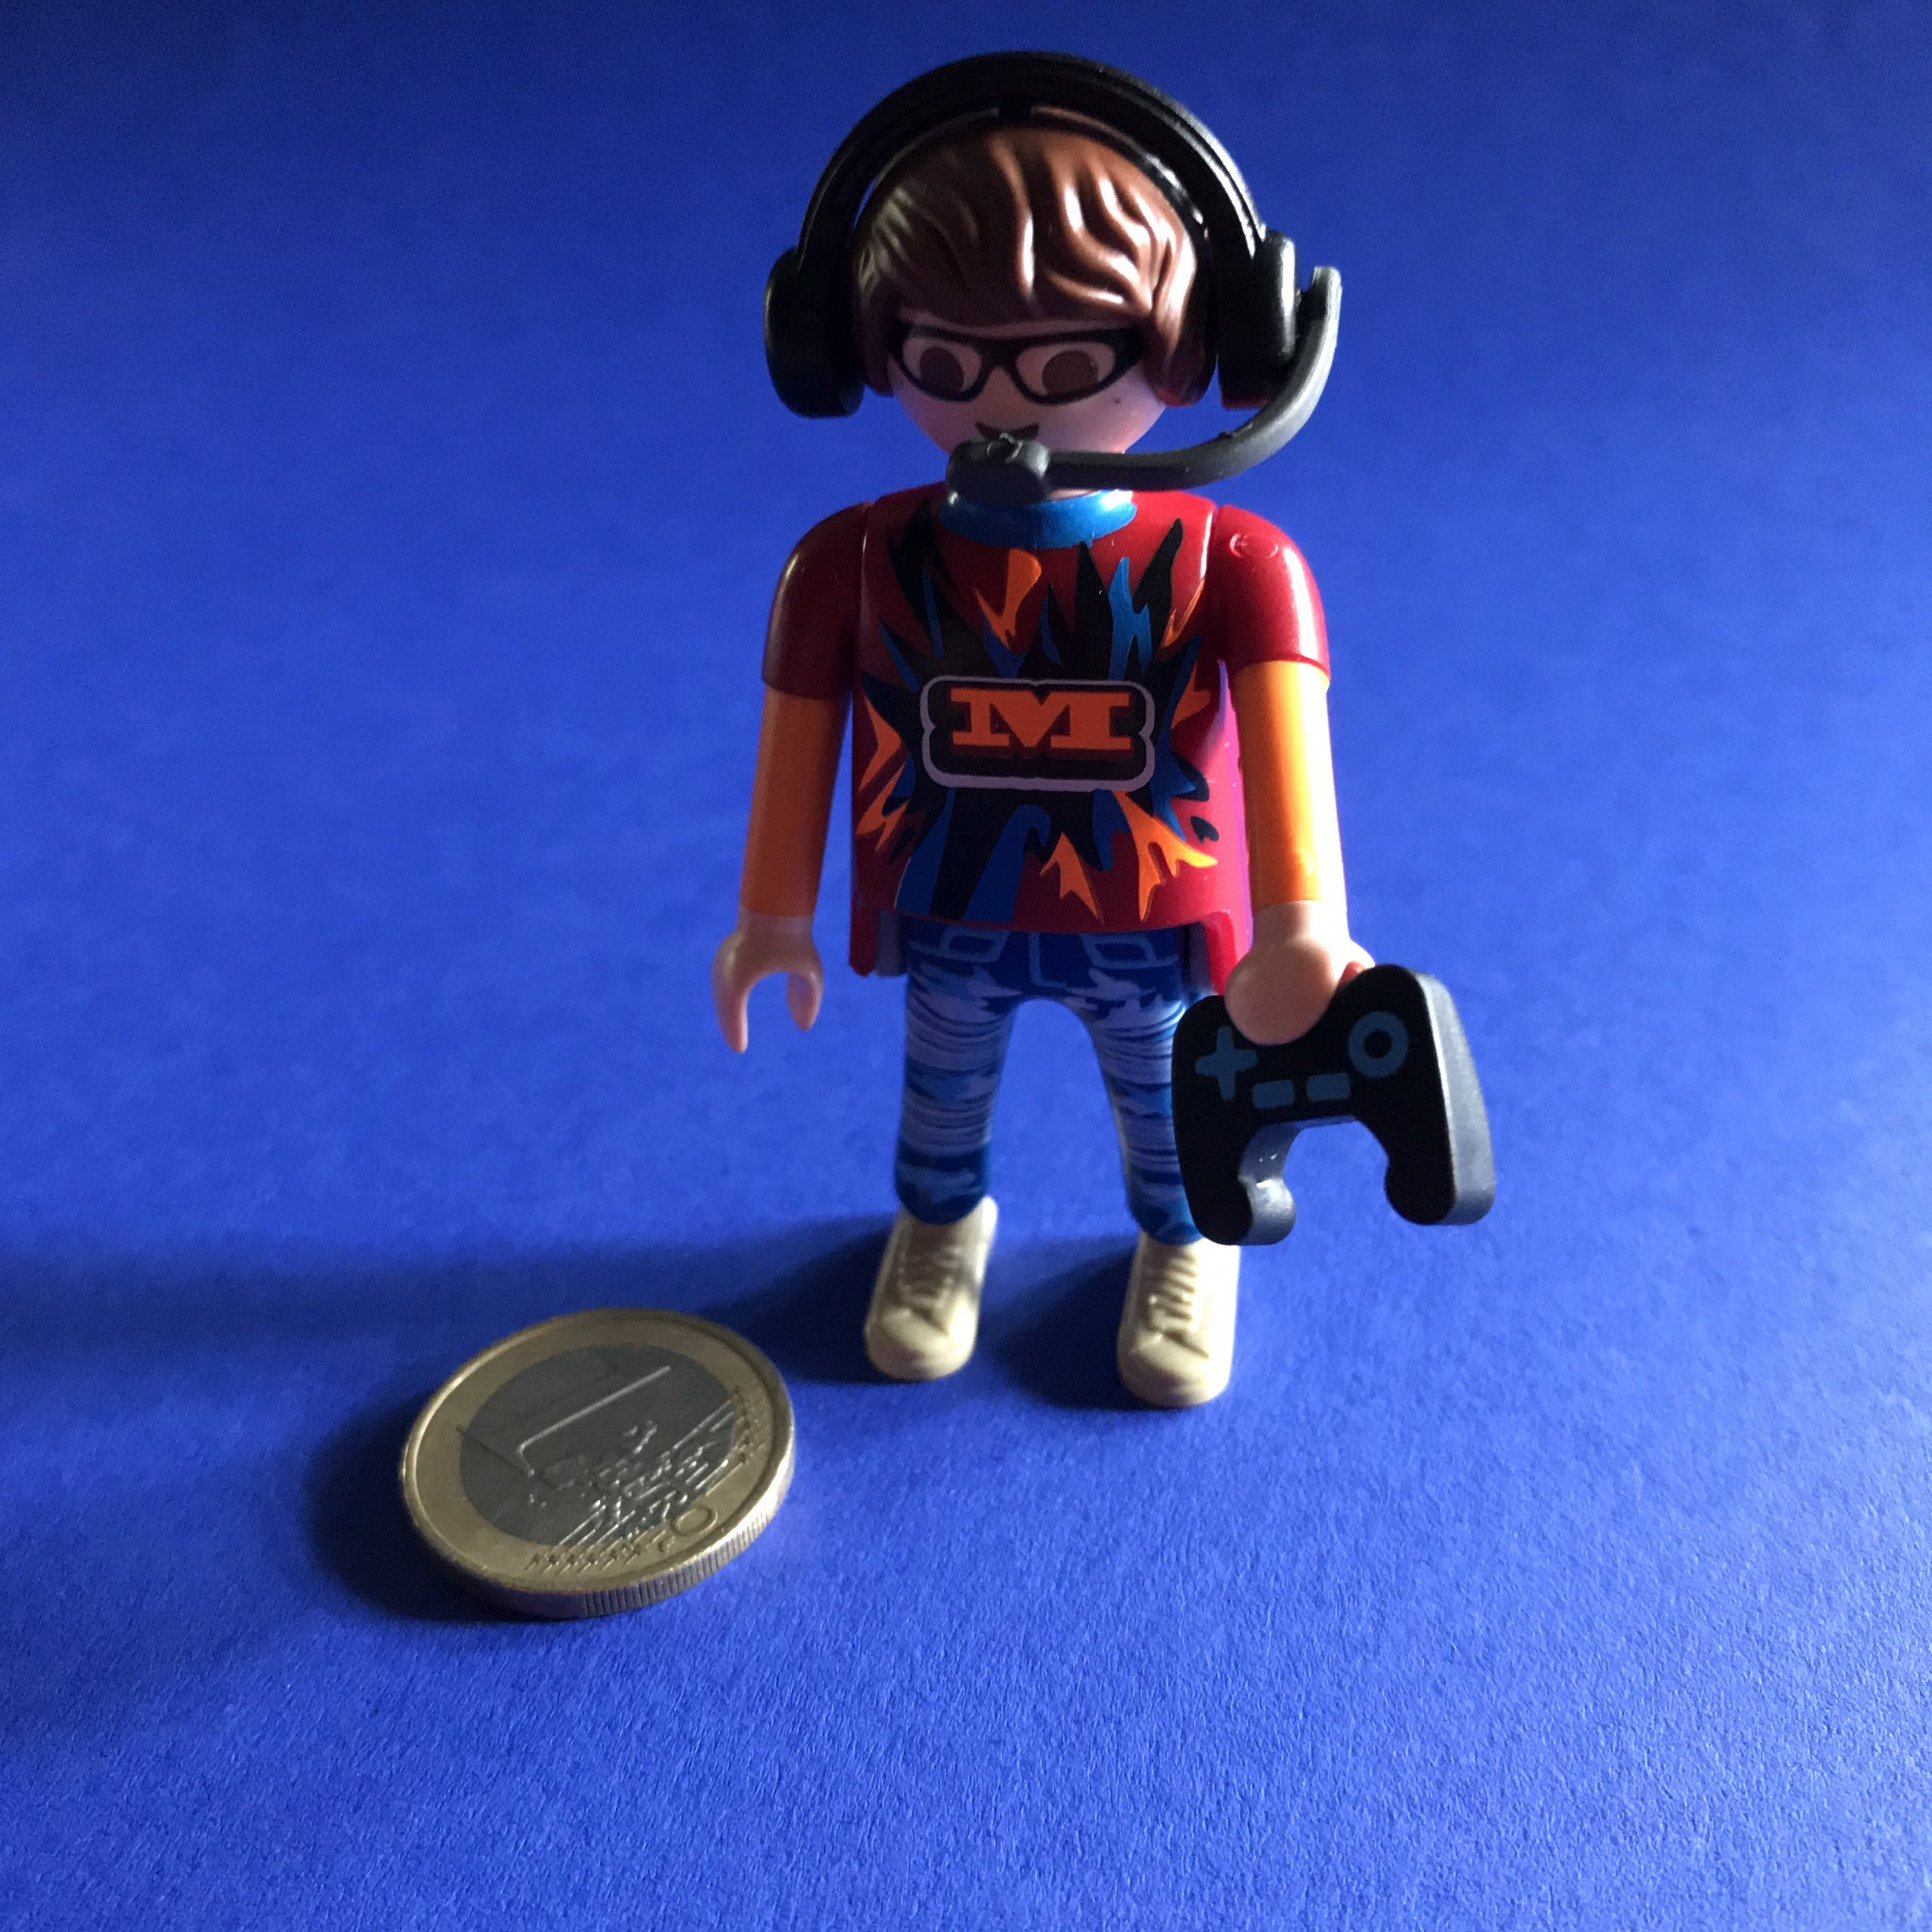 Playmobil-gamer